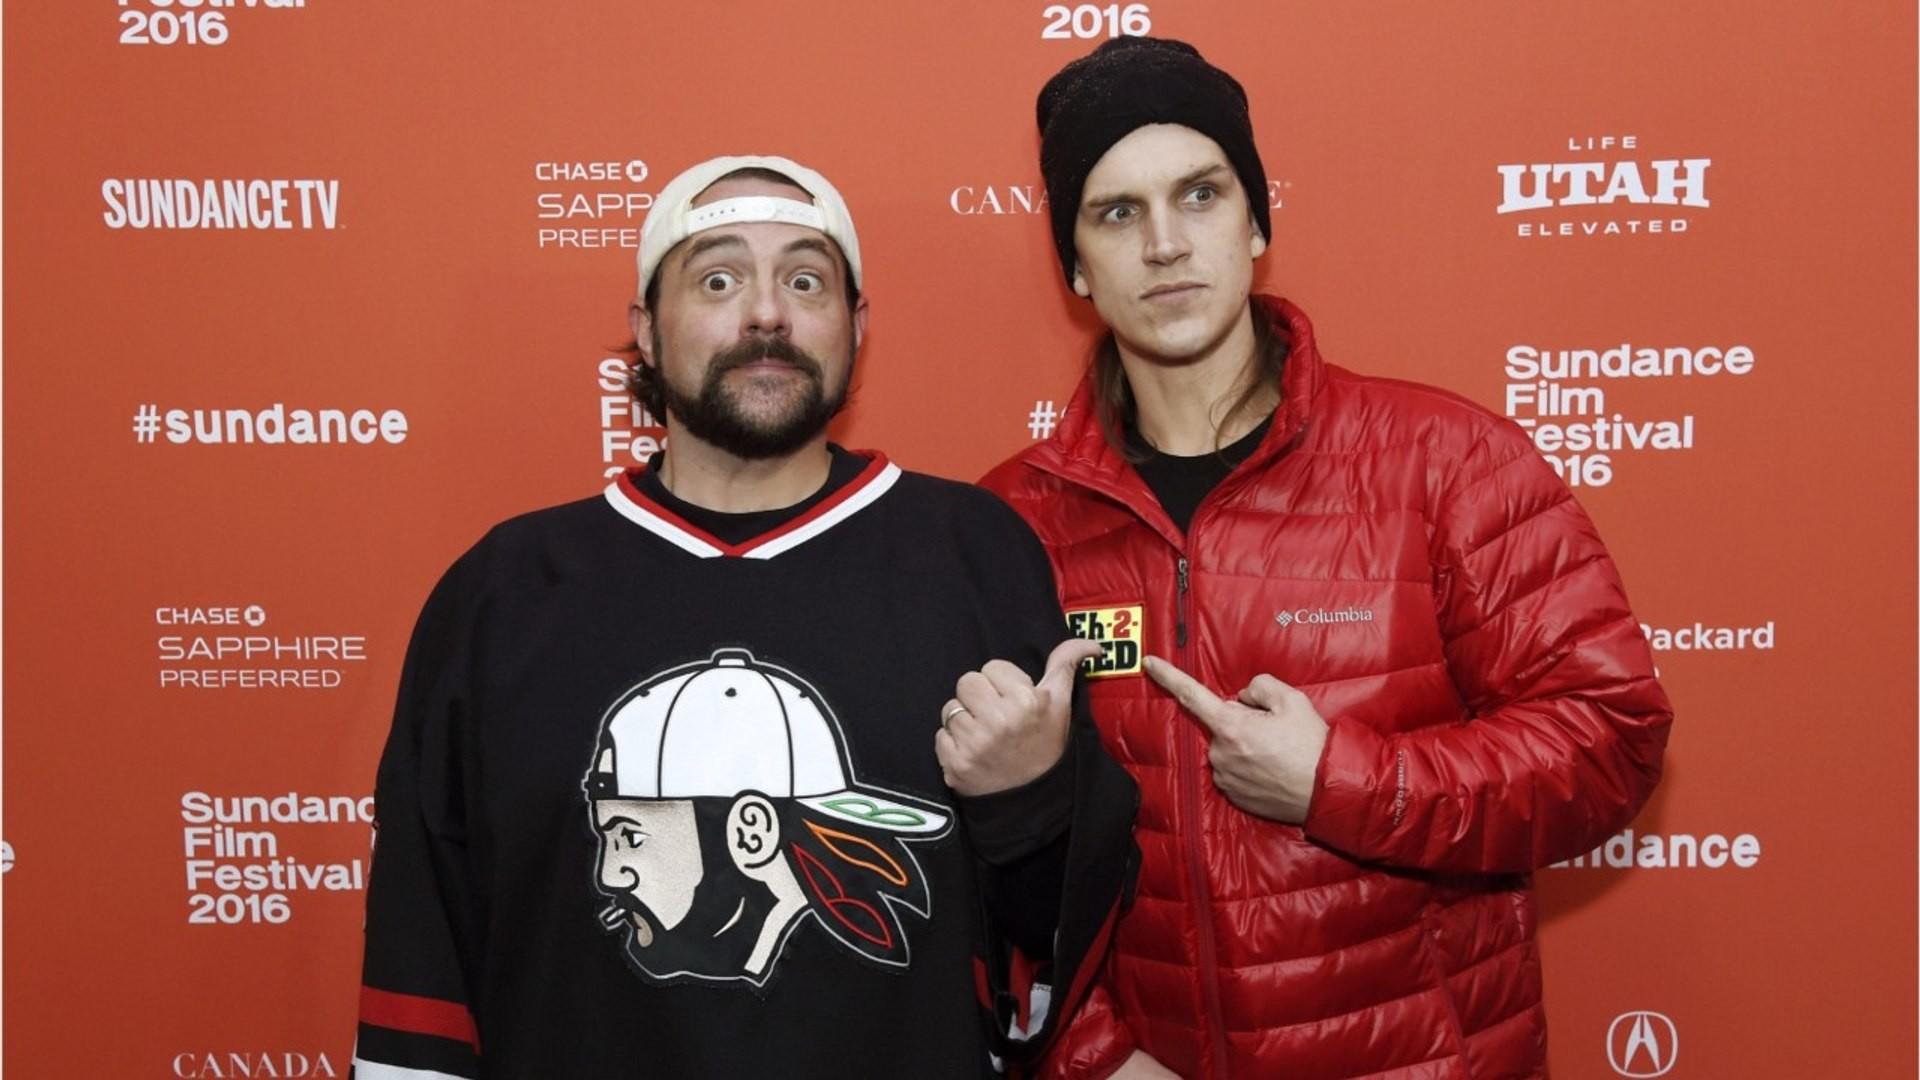 1920x1080 Kevin Smith Teases Latest Addition To Cast Of Jay And Silent Bob Reboot